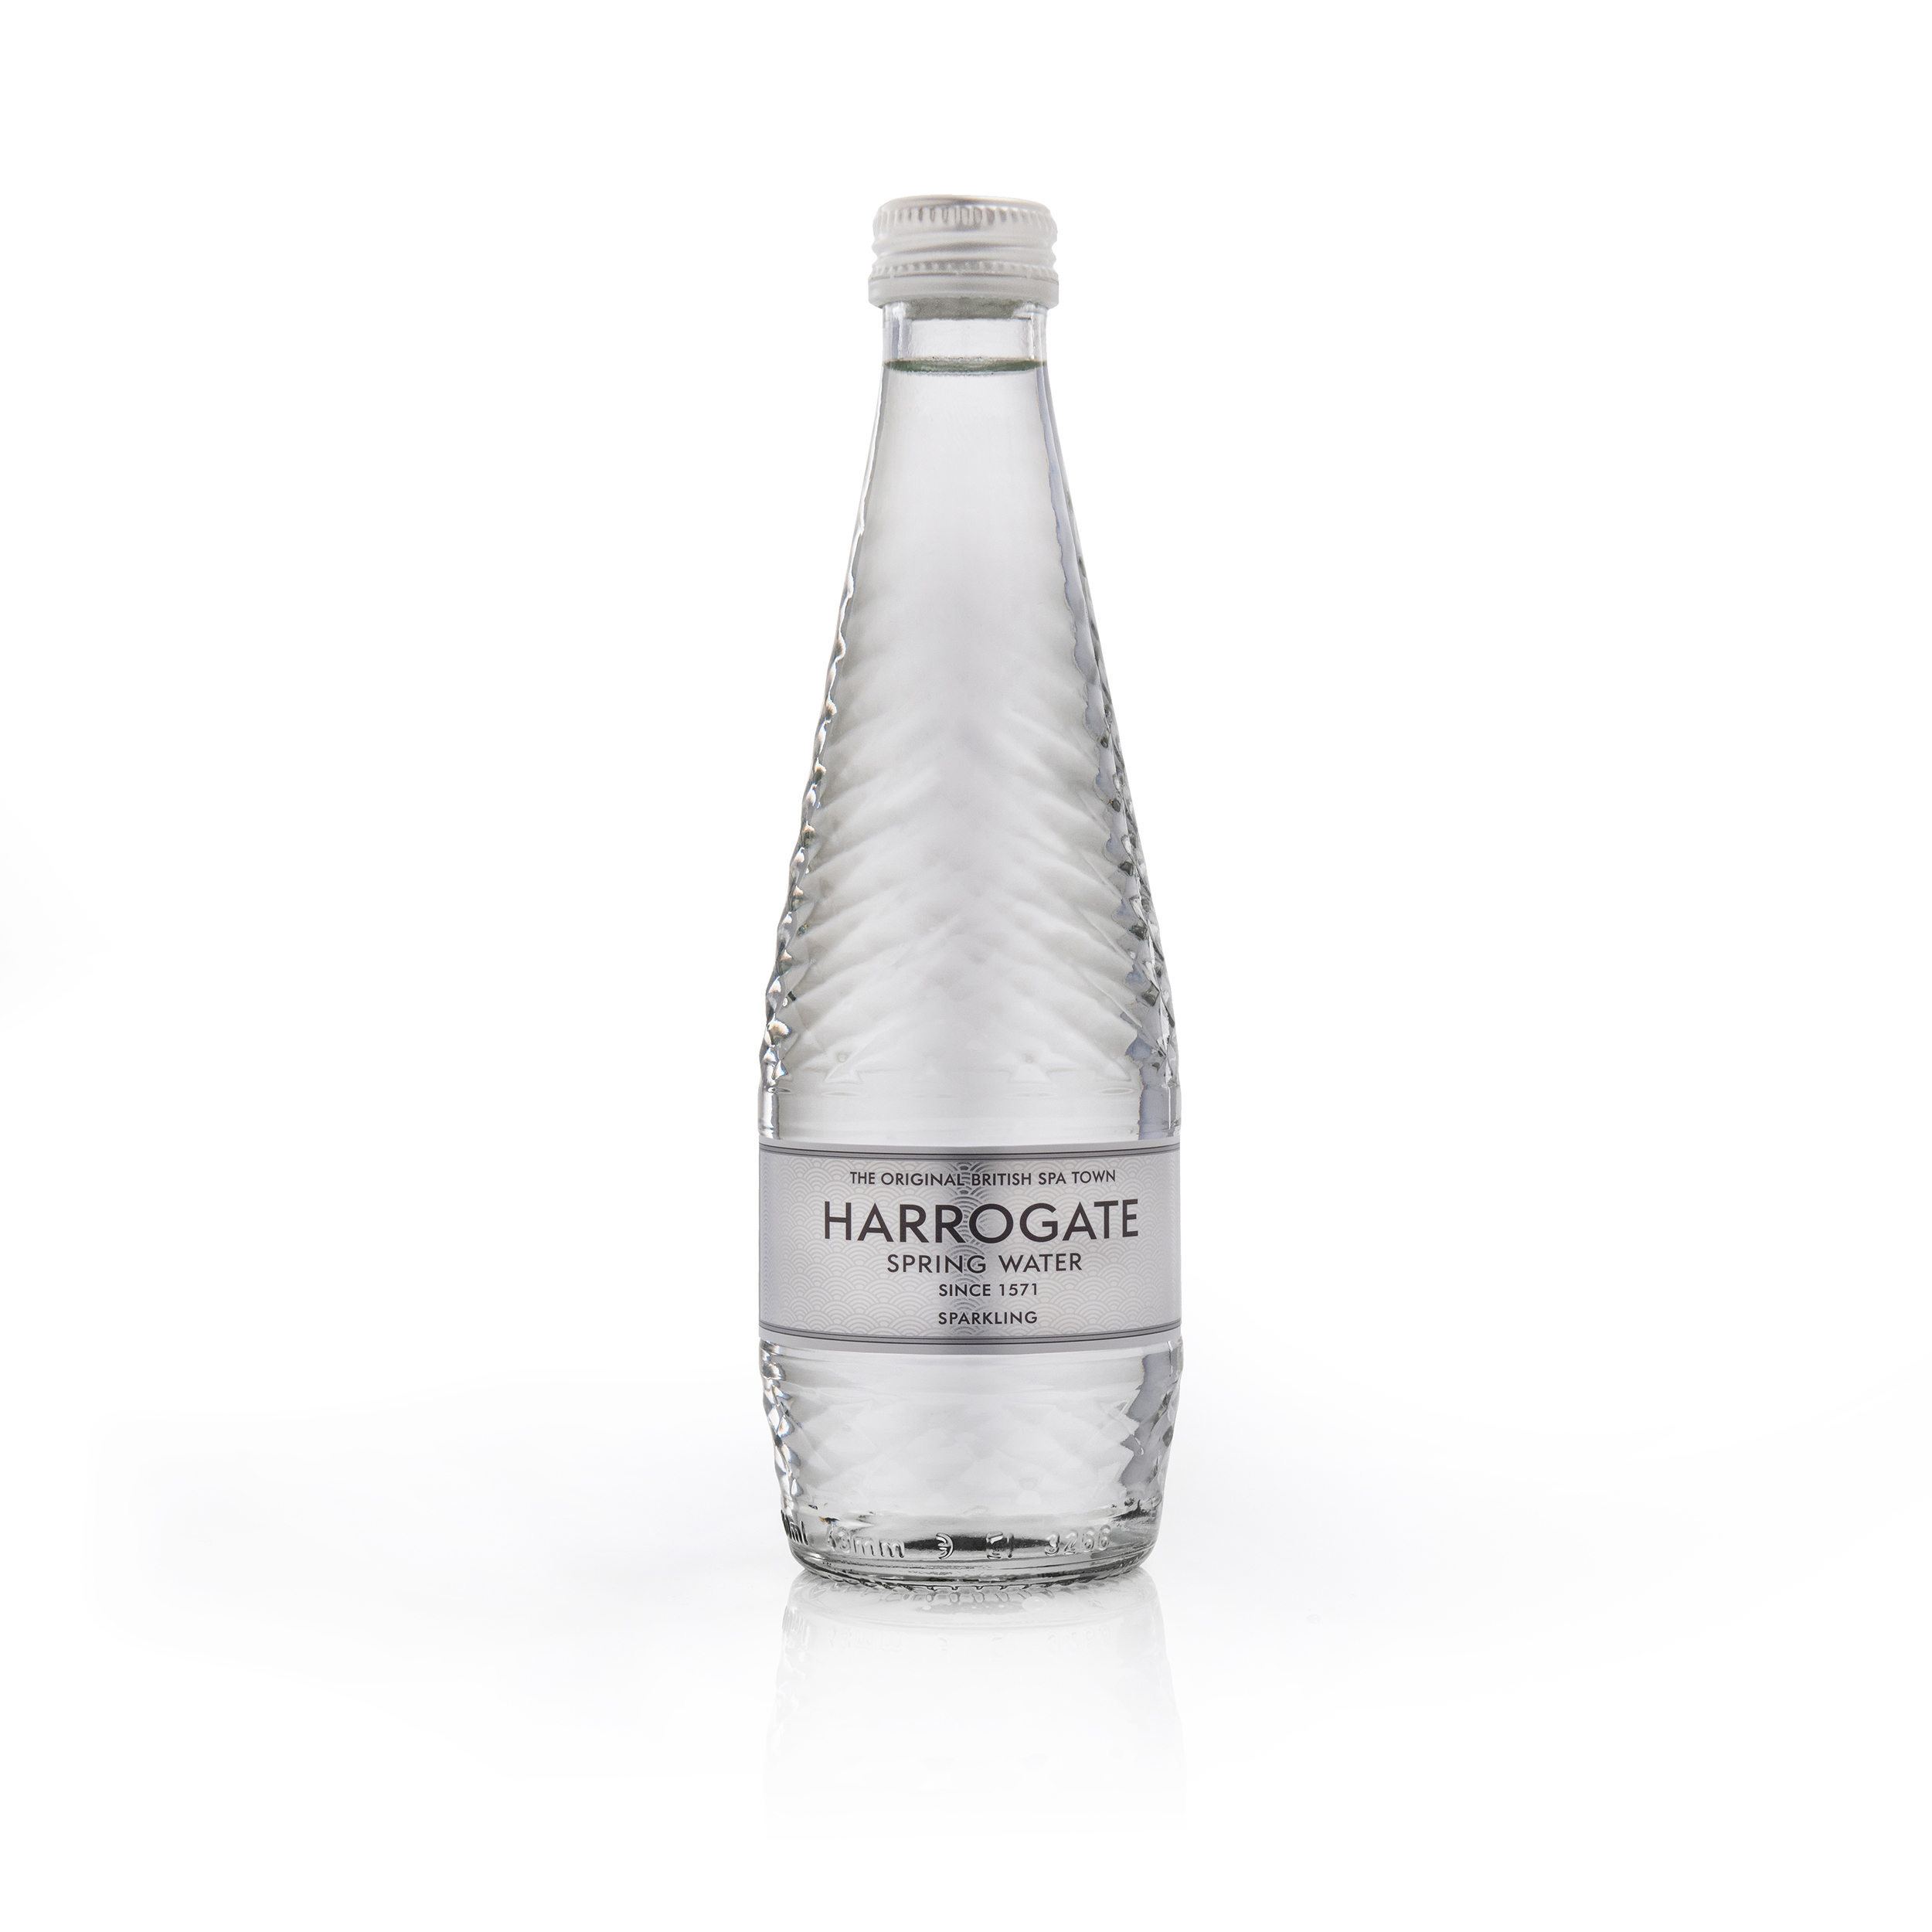 Cold Drinks Harrogate Sparkling Water Glass Bottle 330ml Ref G330242C Pack 24